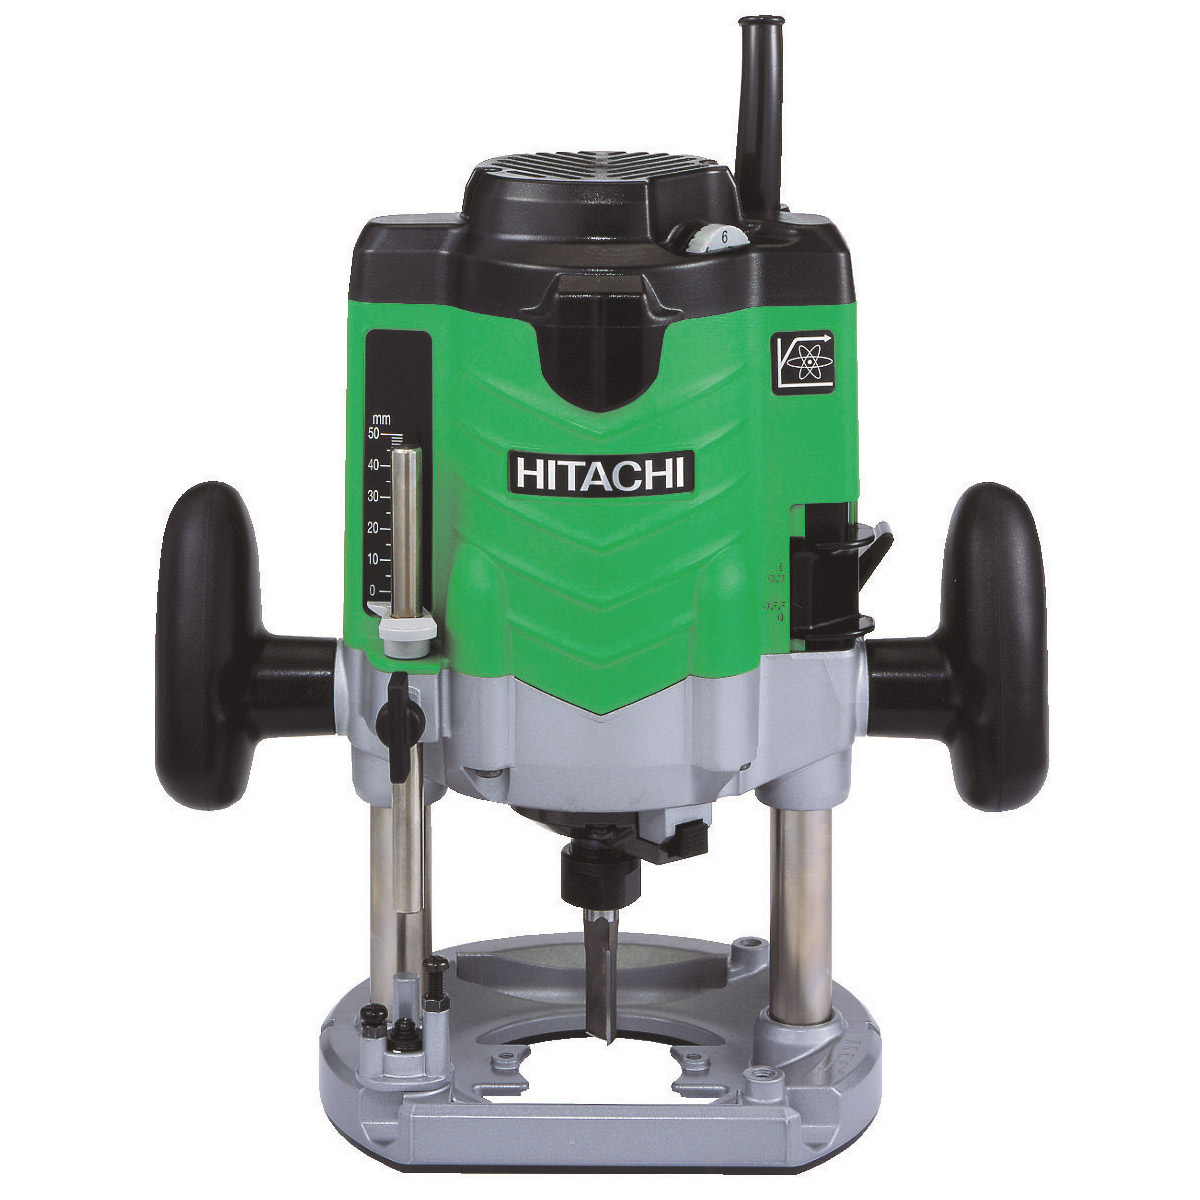 HITACHI M12VE 1/2IN VARIABLE SPEED ROUTER 110V